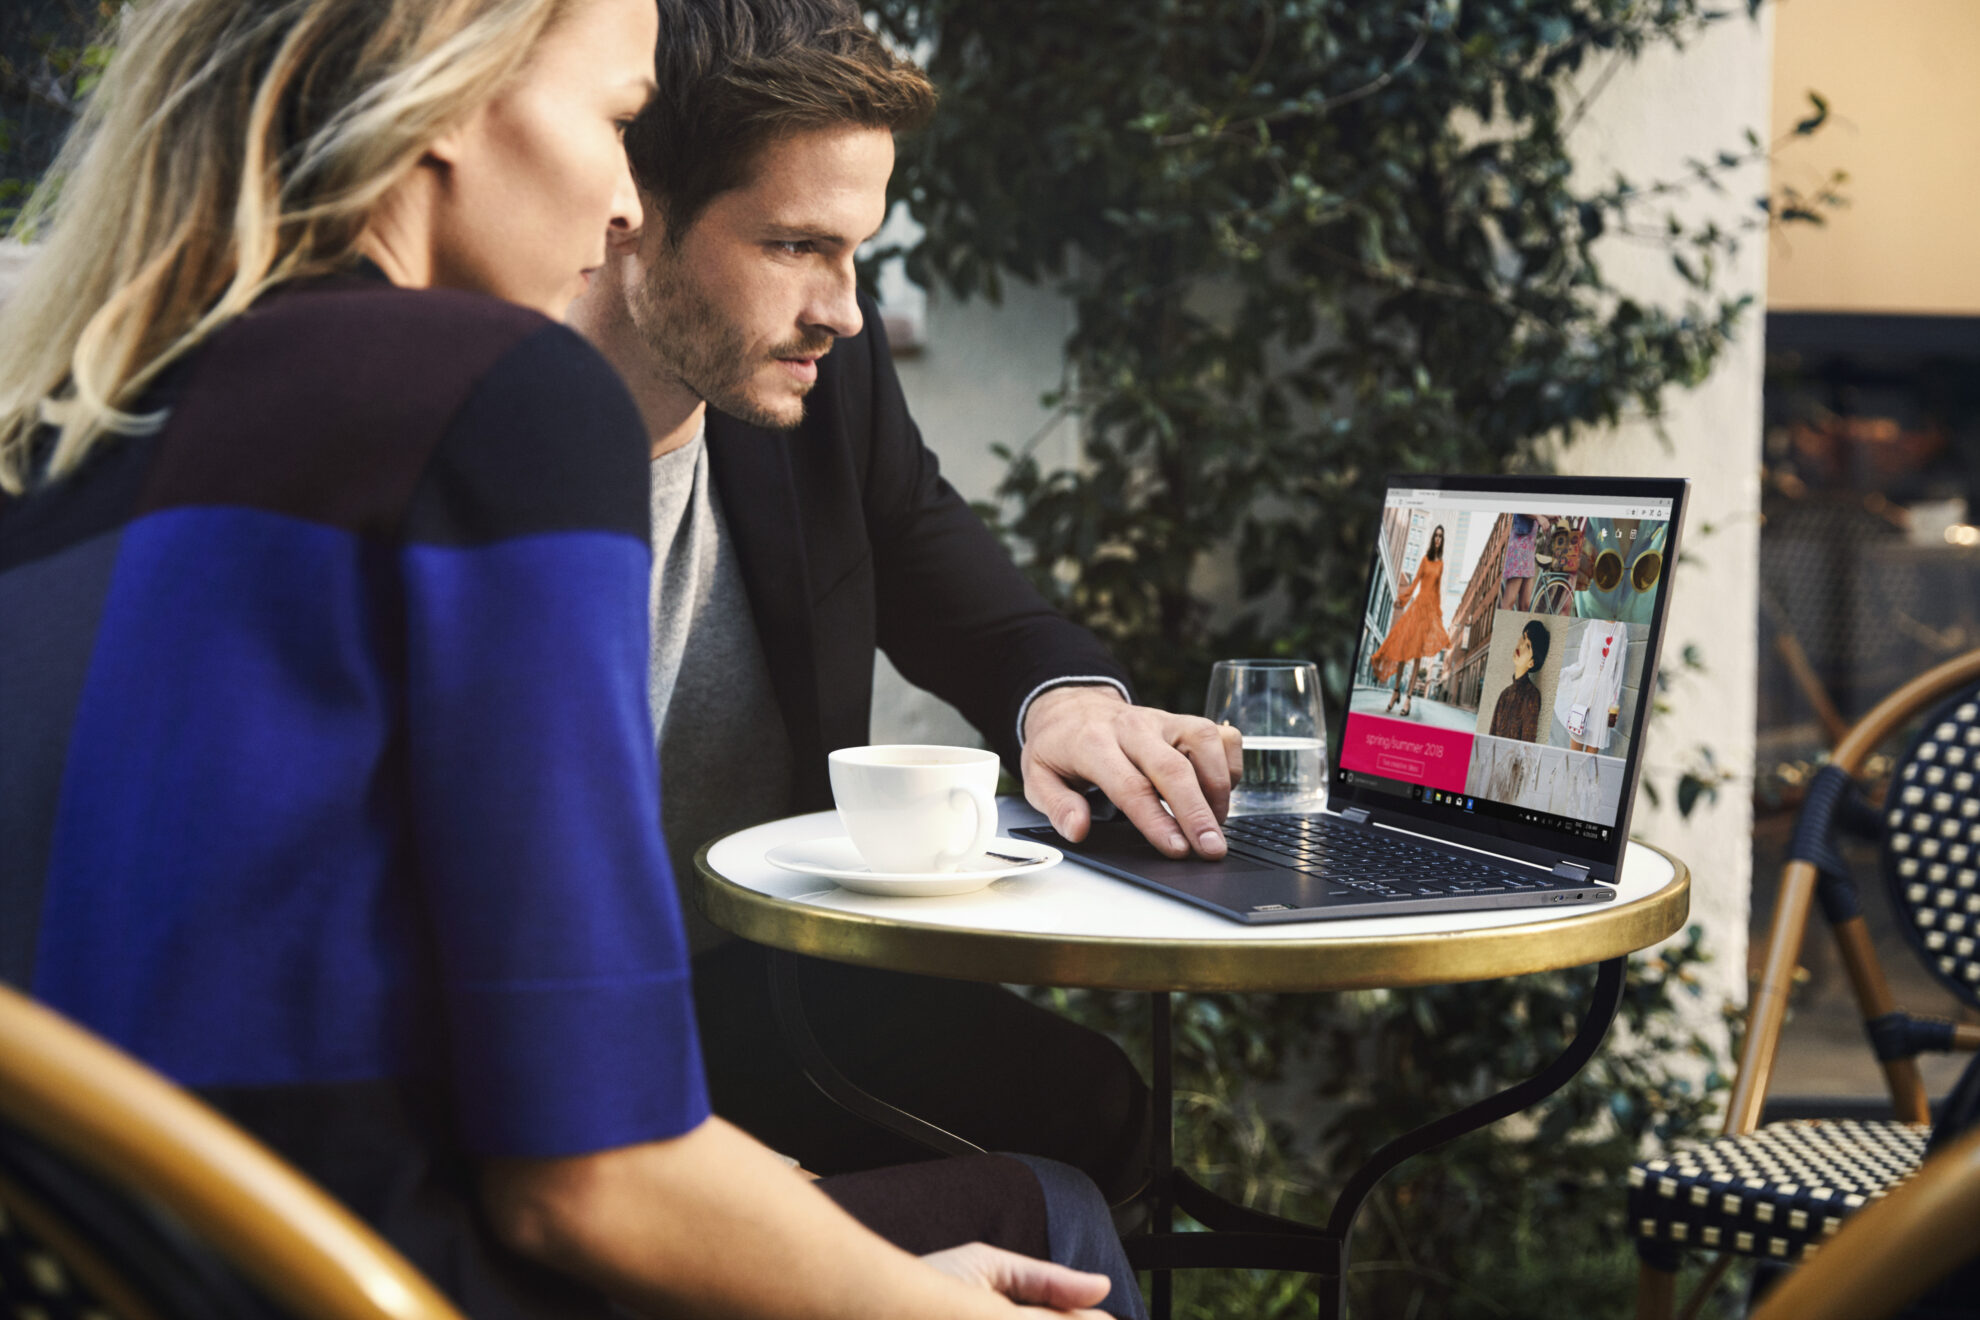 Couple using Lenovo Flex5G at outdoor table